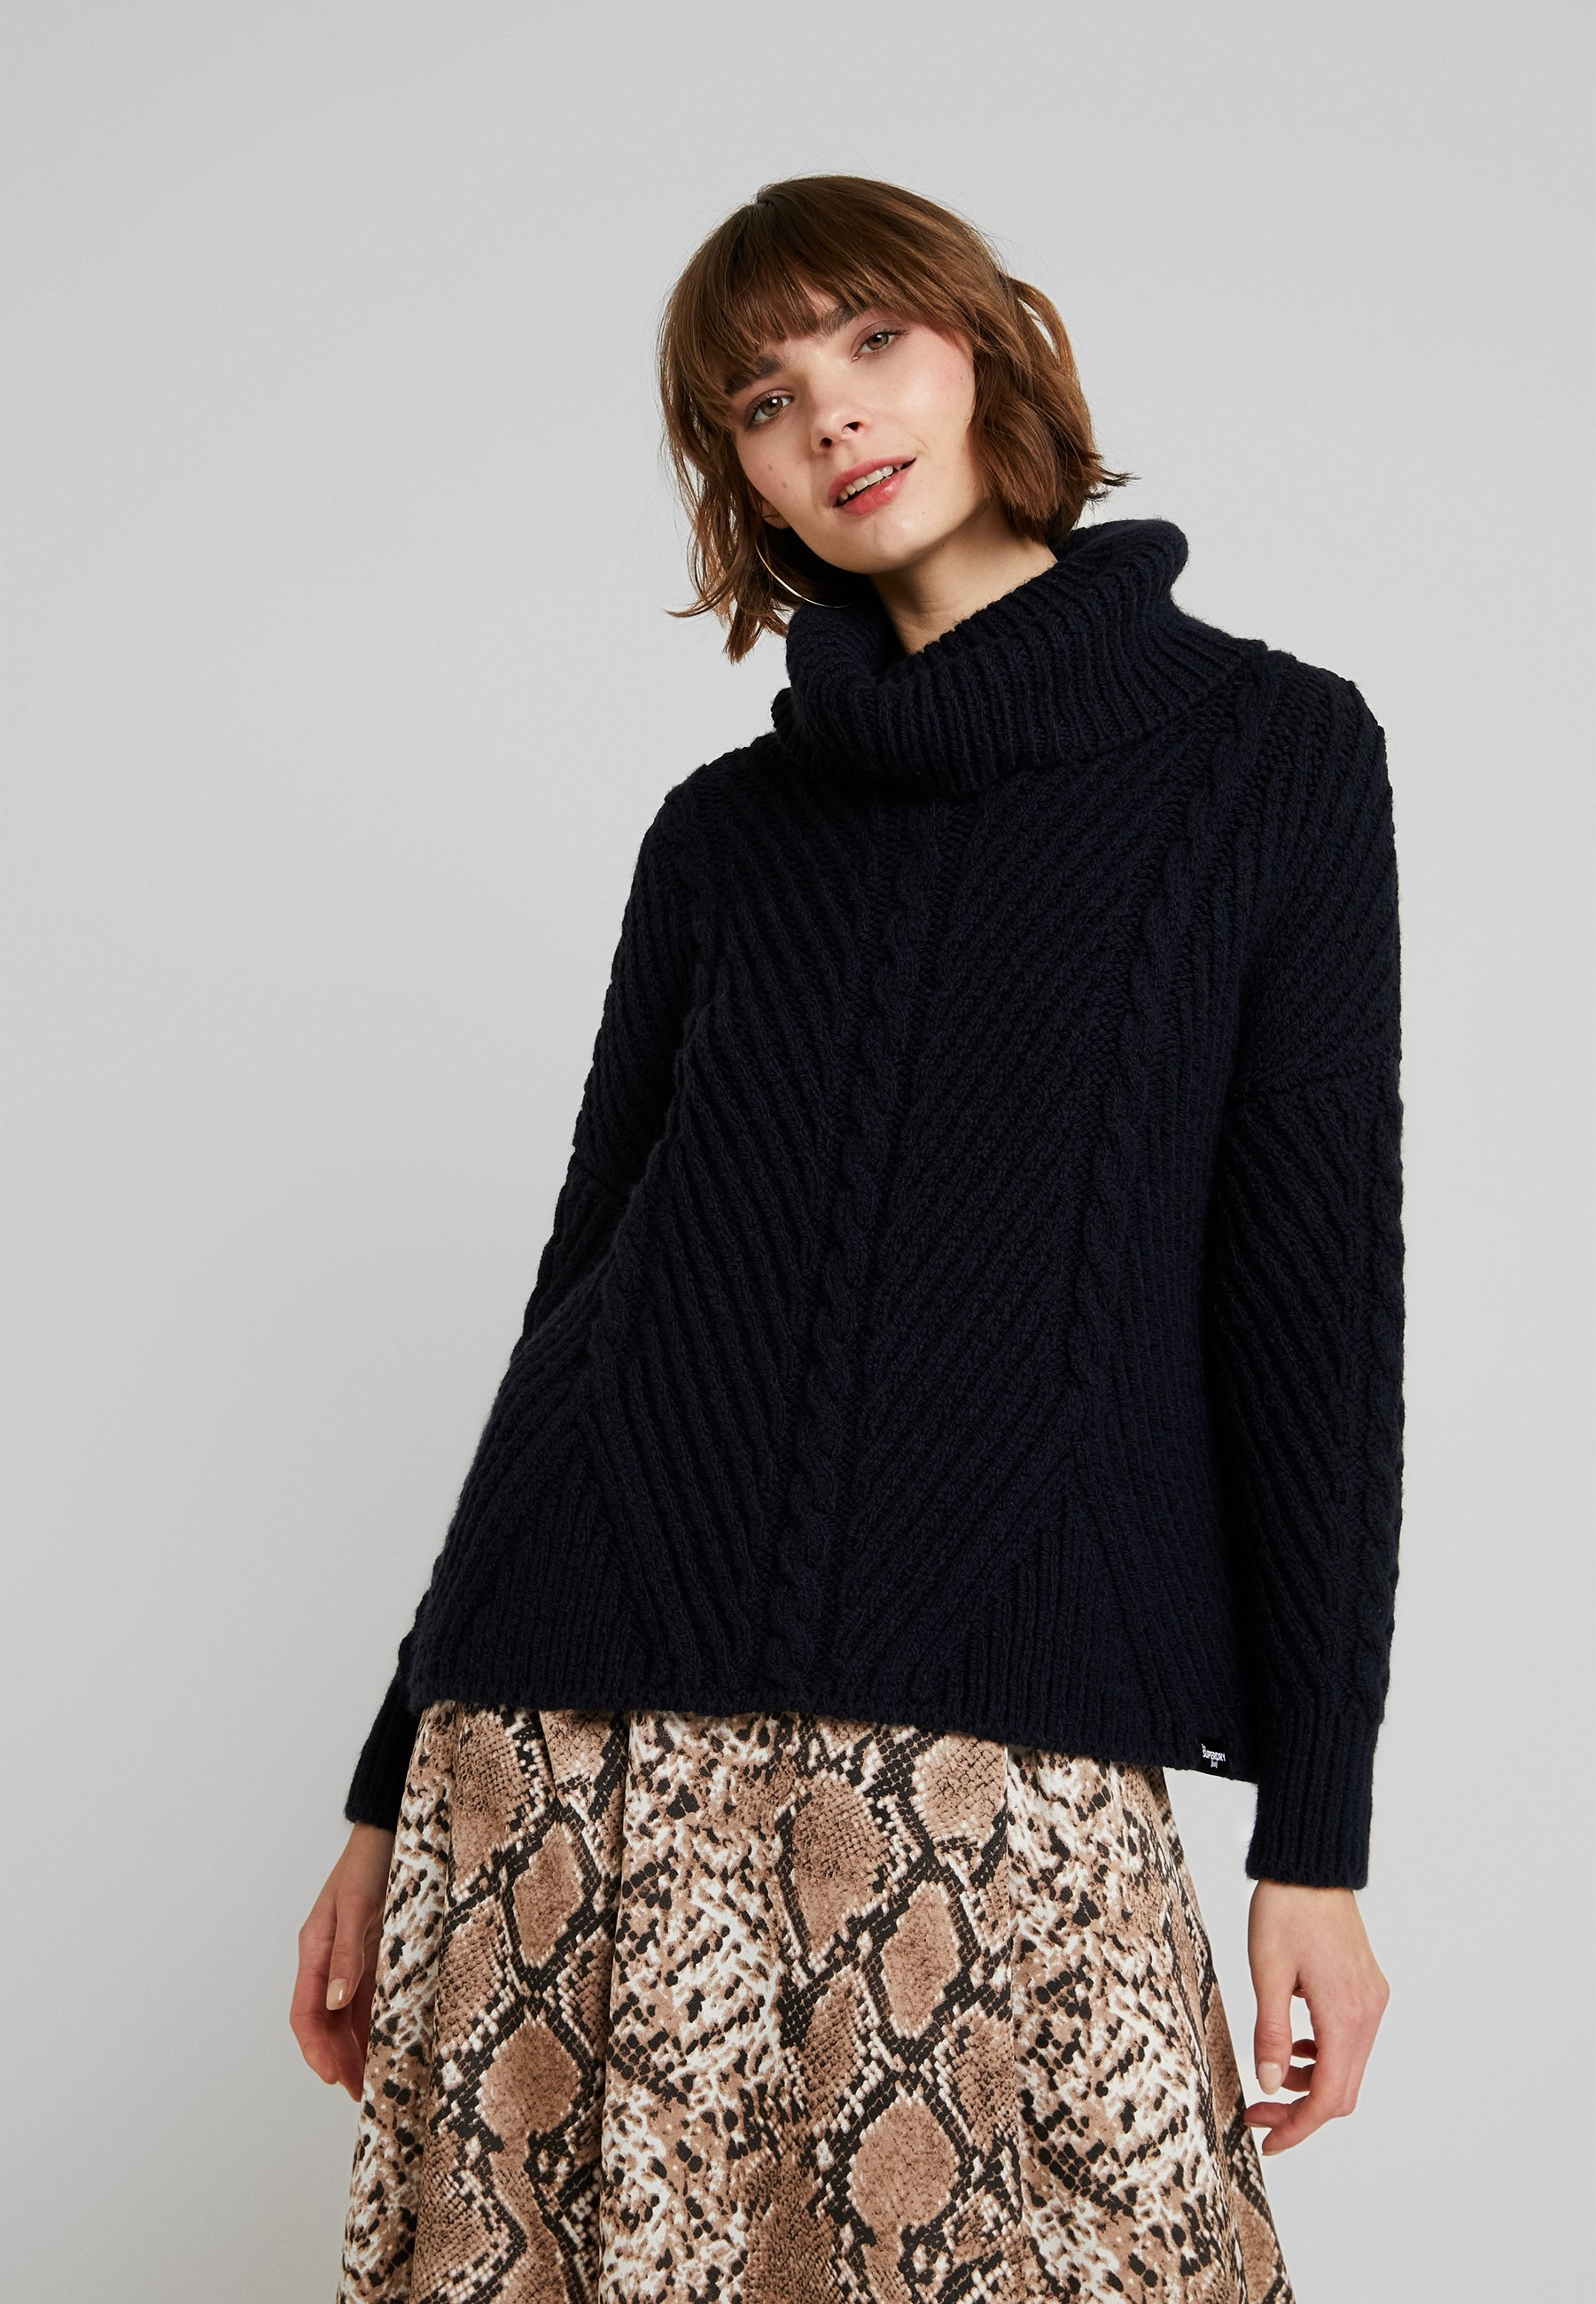 CapePullover Rinse Superdry Cable Tori Navy vyN8nwm0O